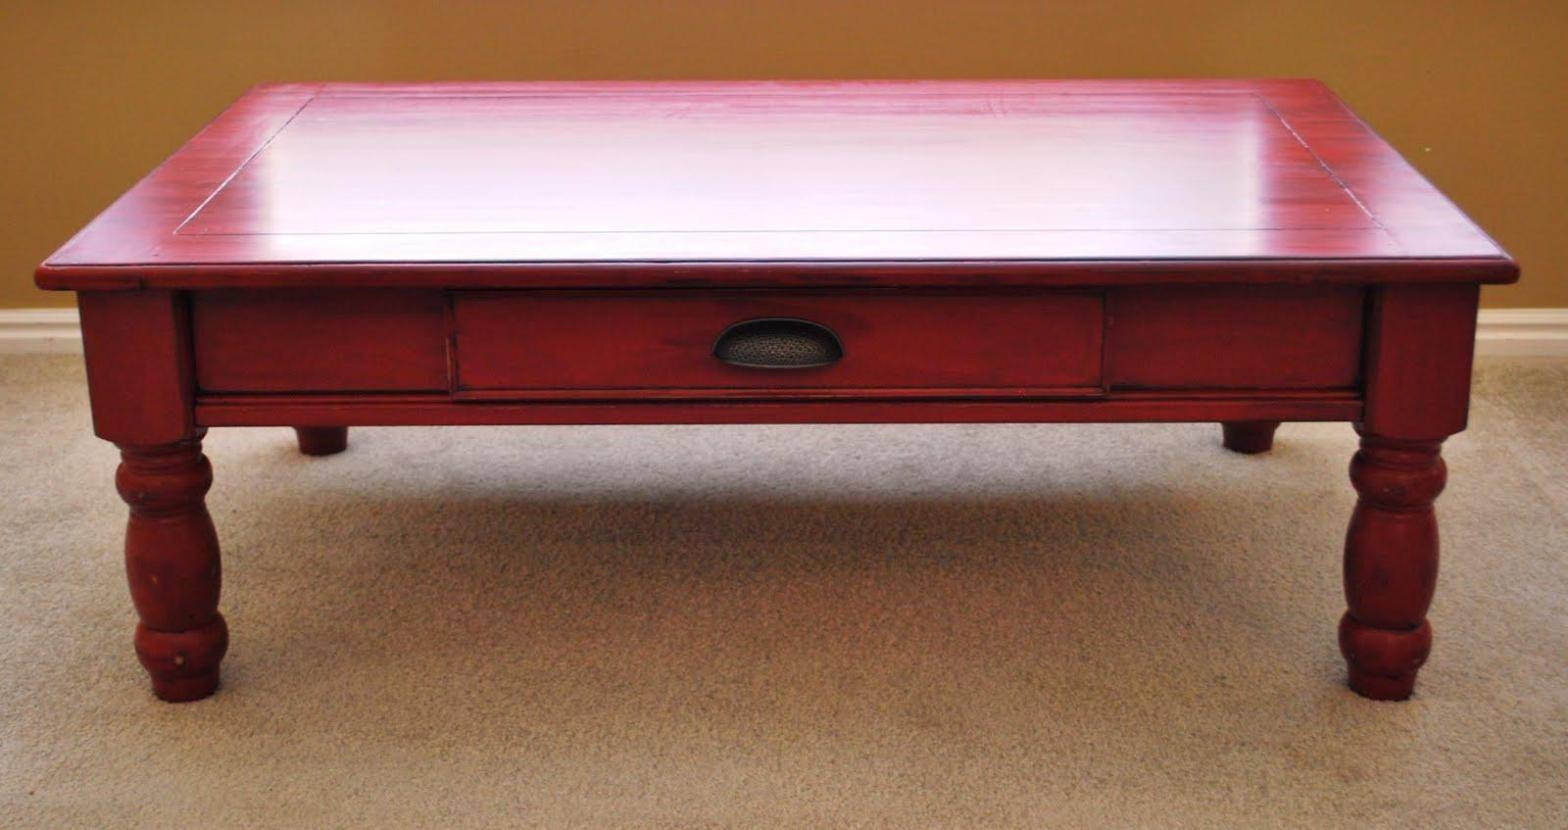 Painted Round Coffee Tables : Bed & Shower - Diy Painted Coffee with Round Red Coffee Tables (Image 21 of 30)